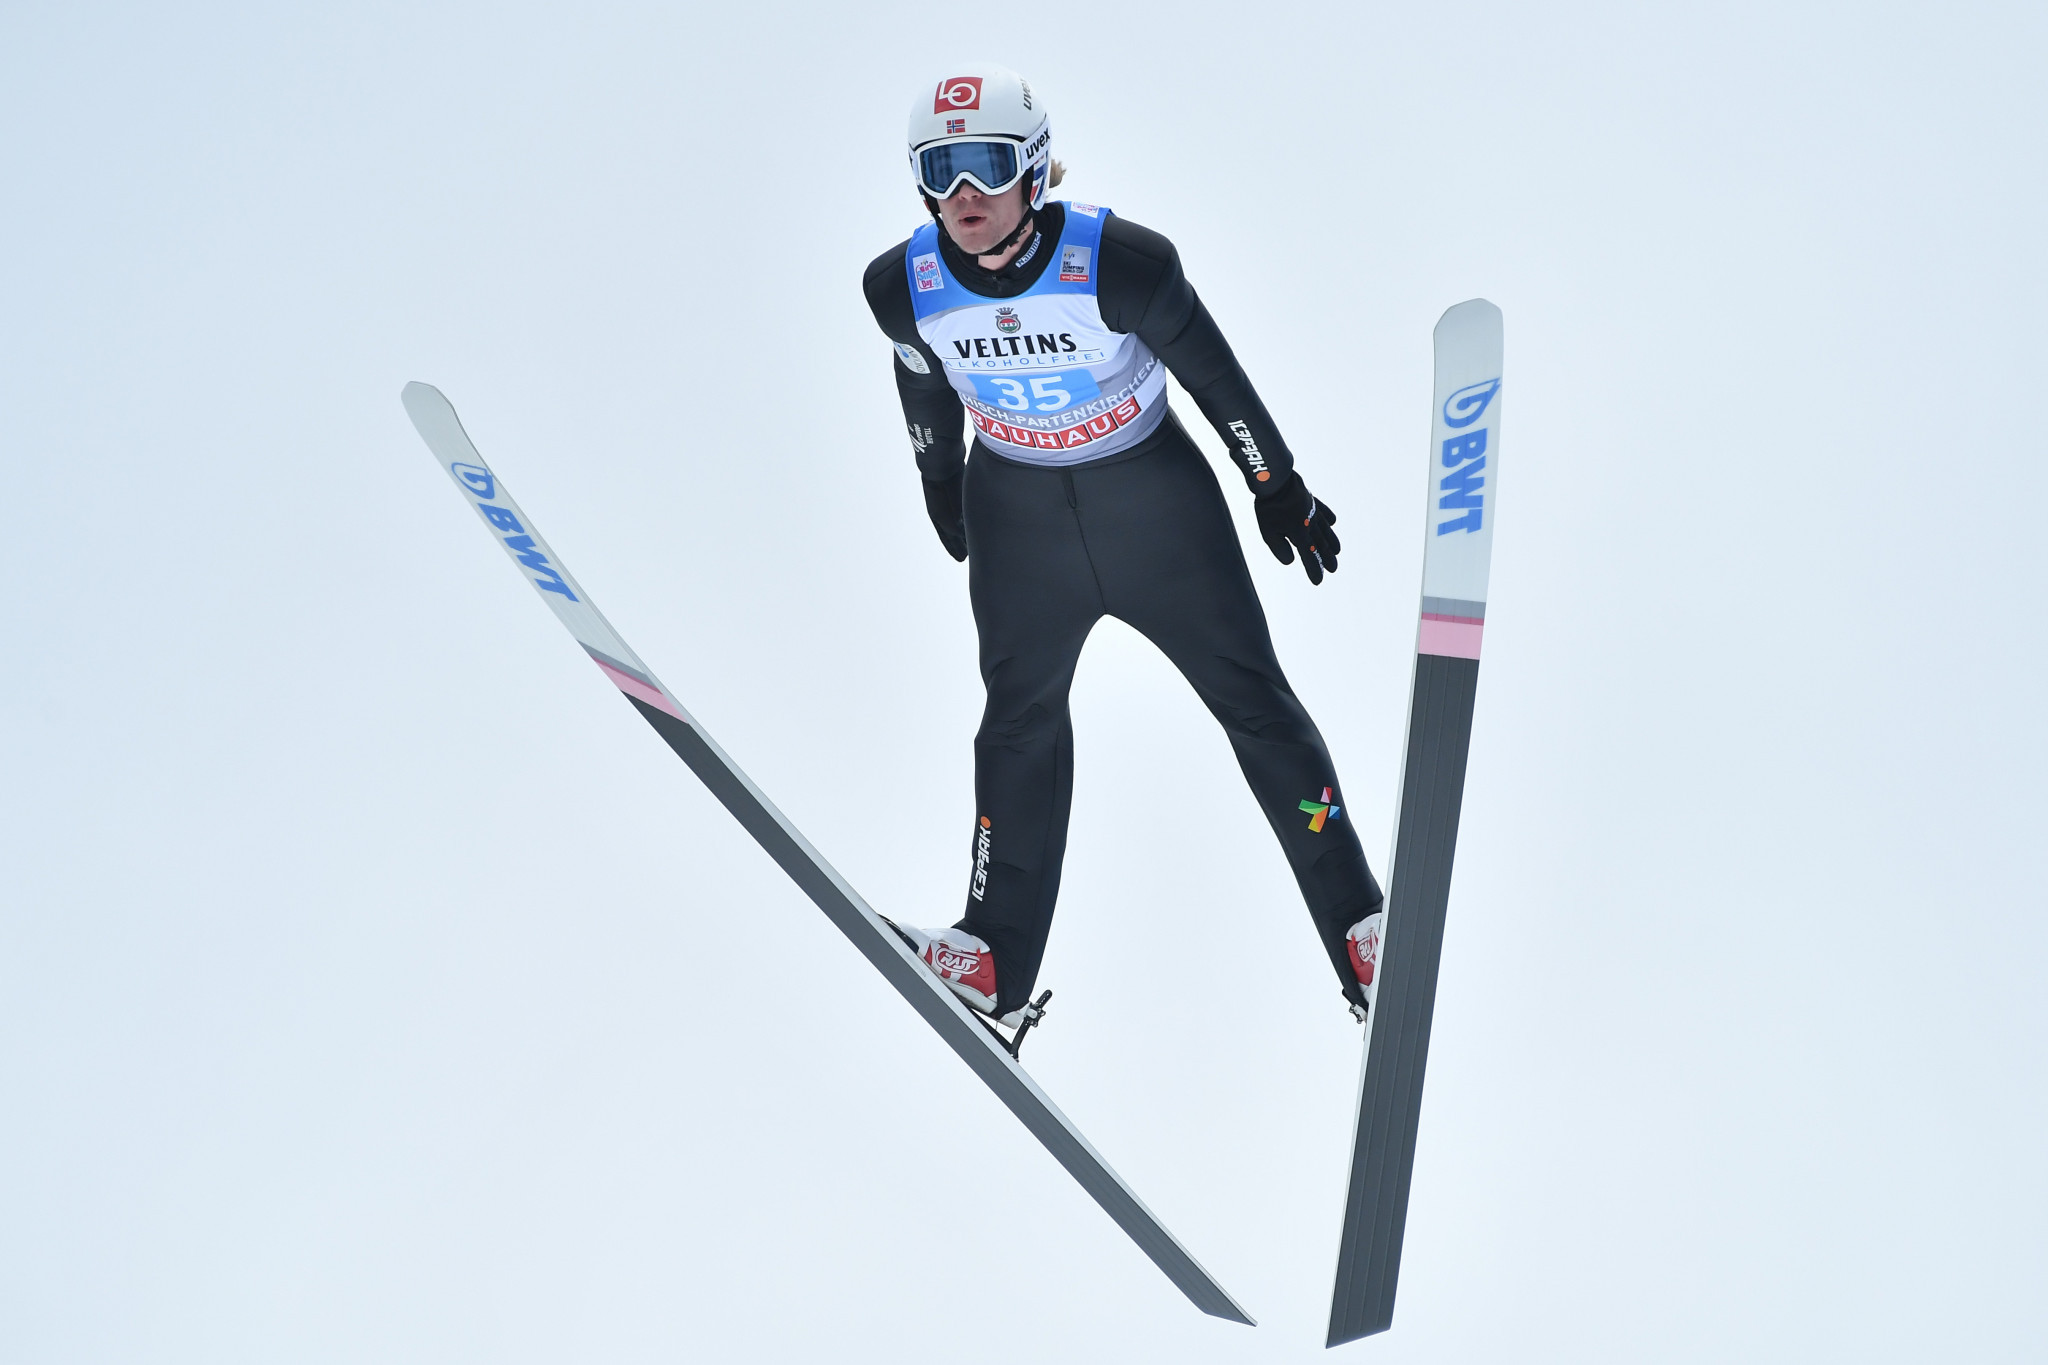 Stjernen and Tande to miss FIS Ski Jumping World Cup in Wellingen